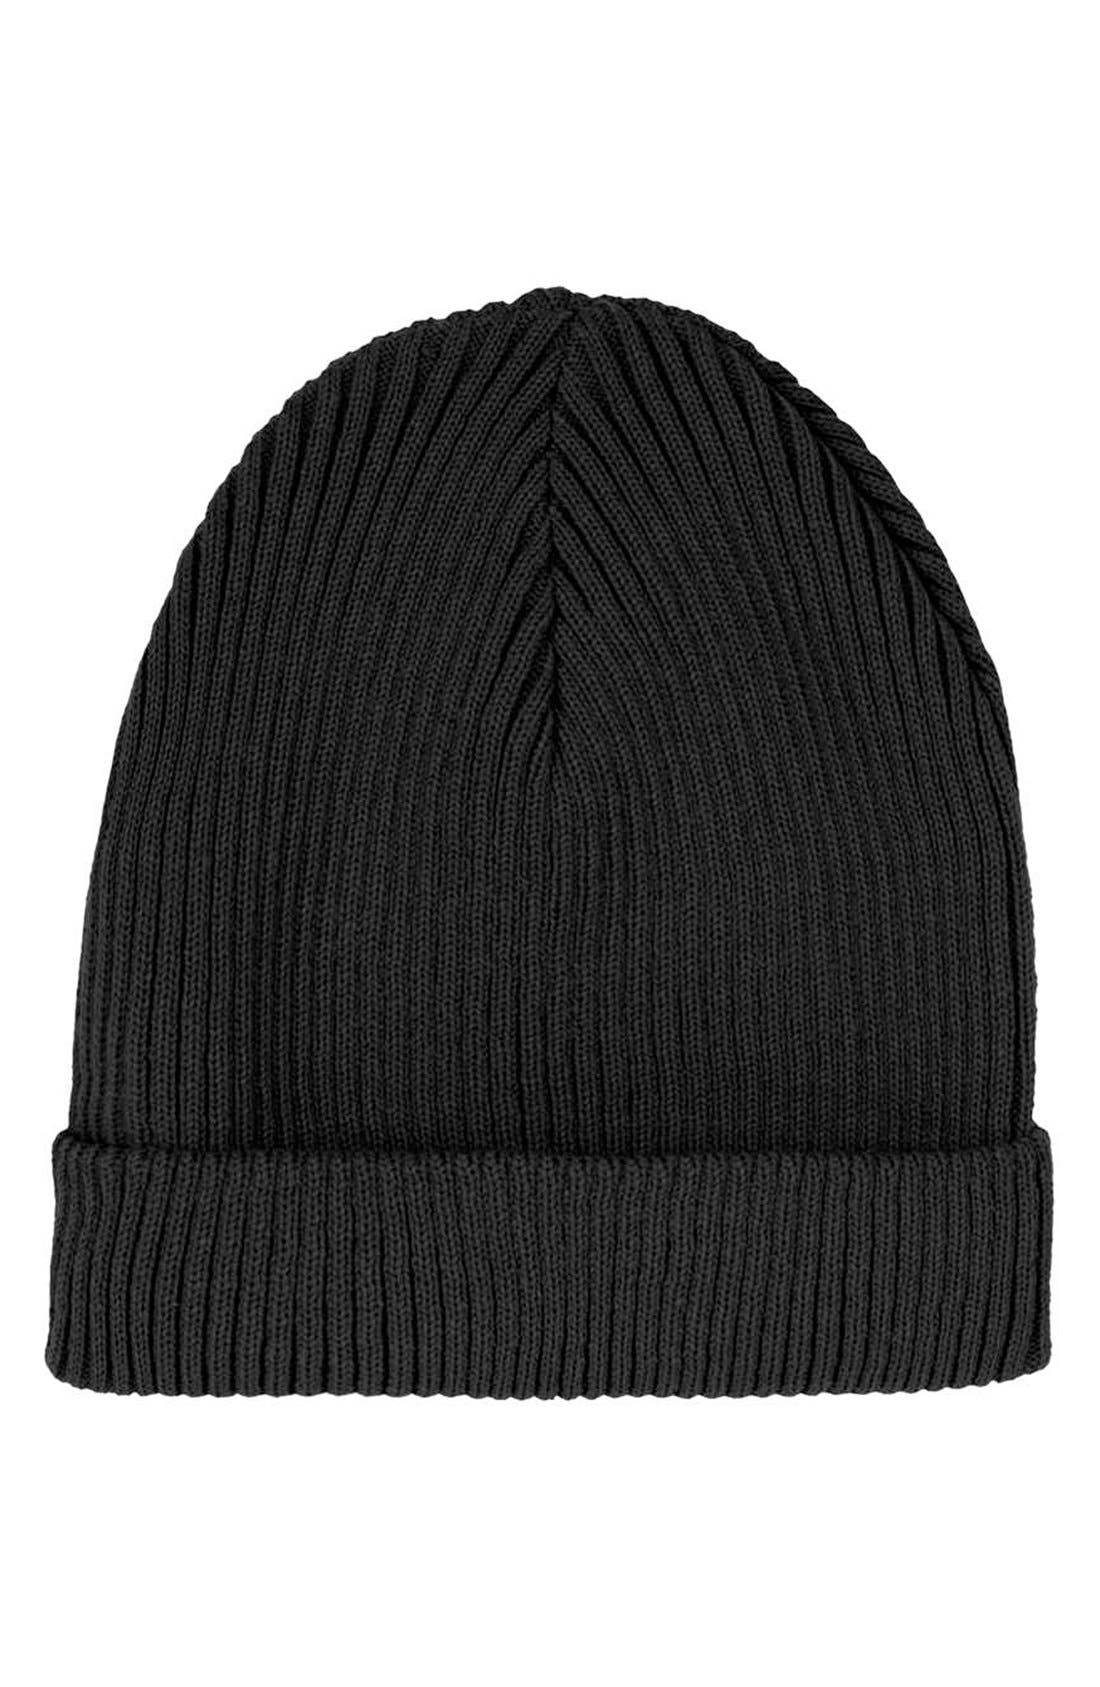 Alternate Image 1 Selected - Topshop Rib Knit Beanie